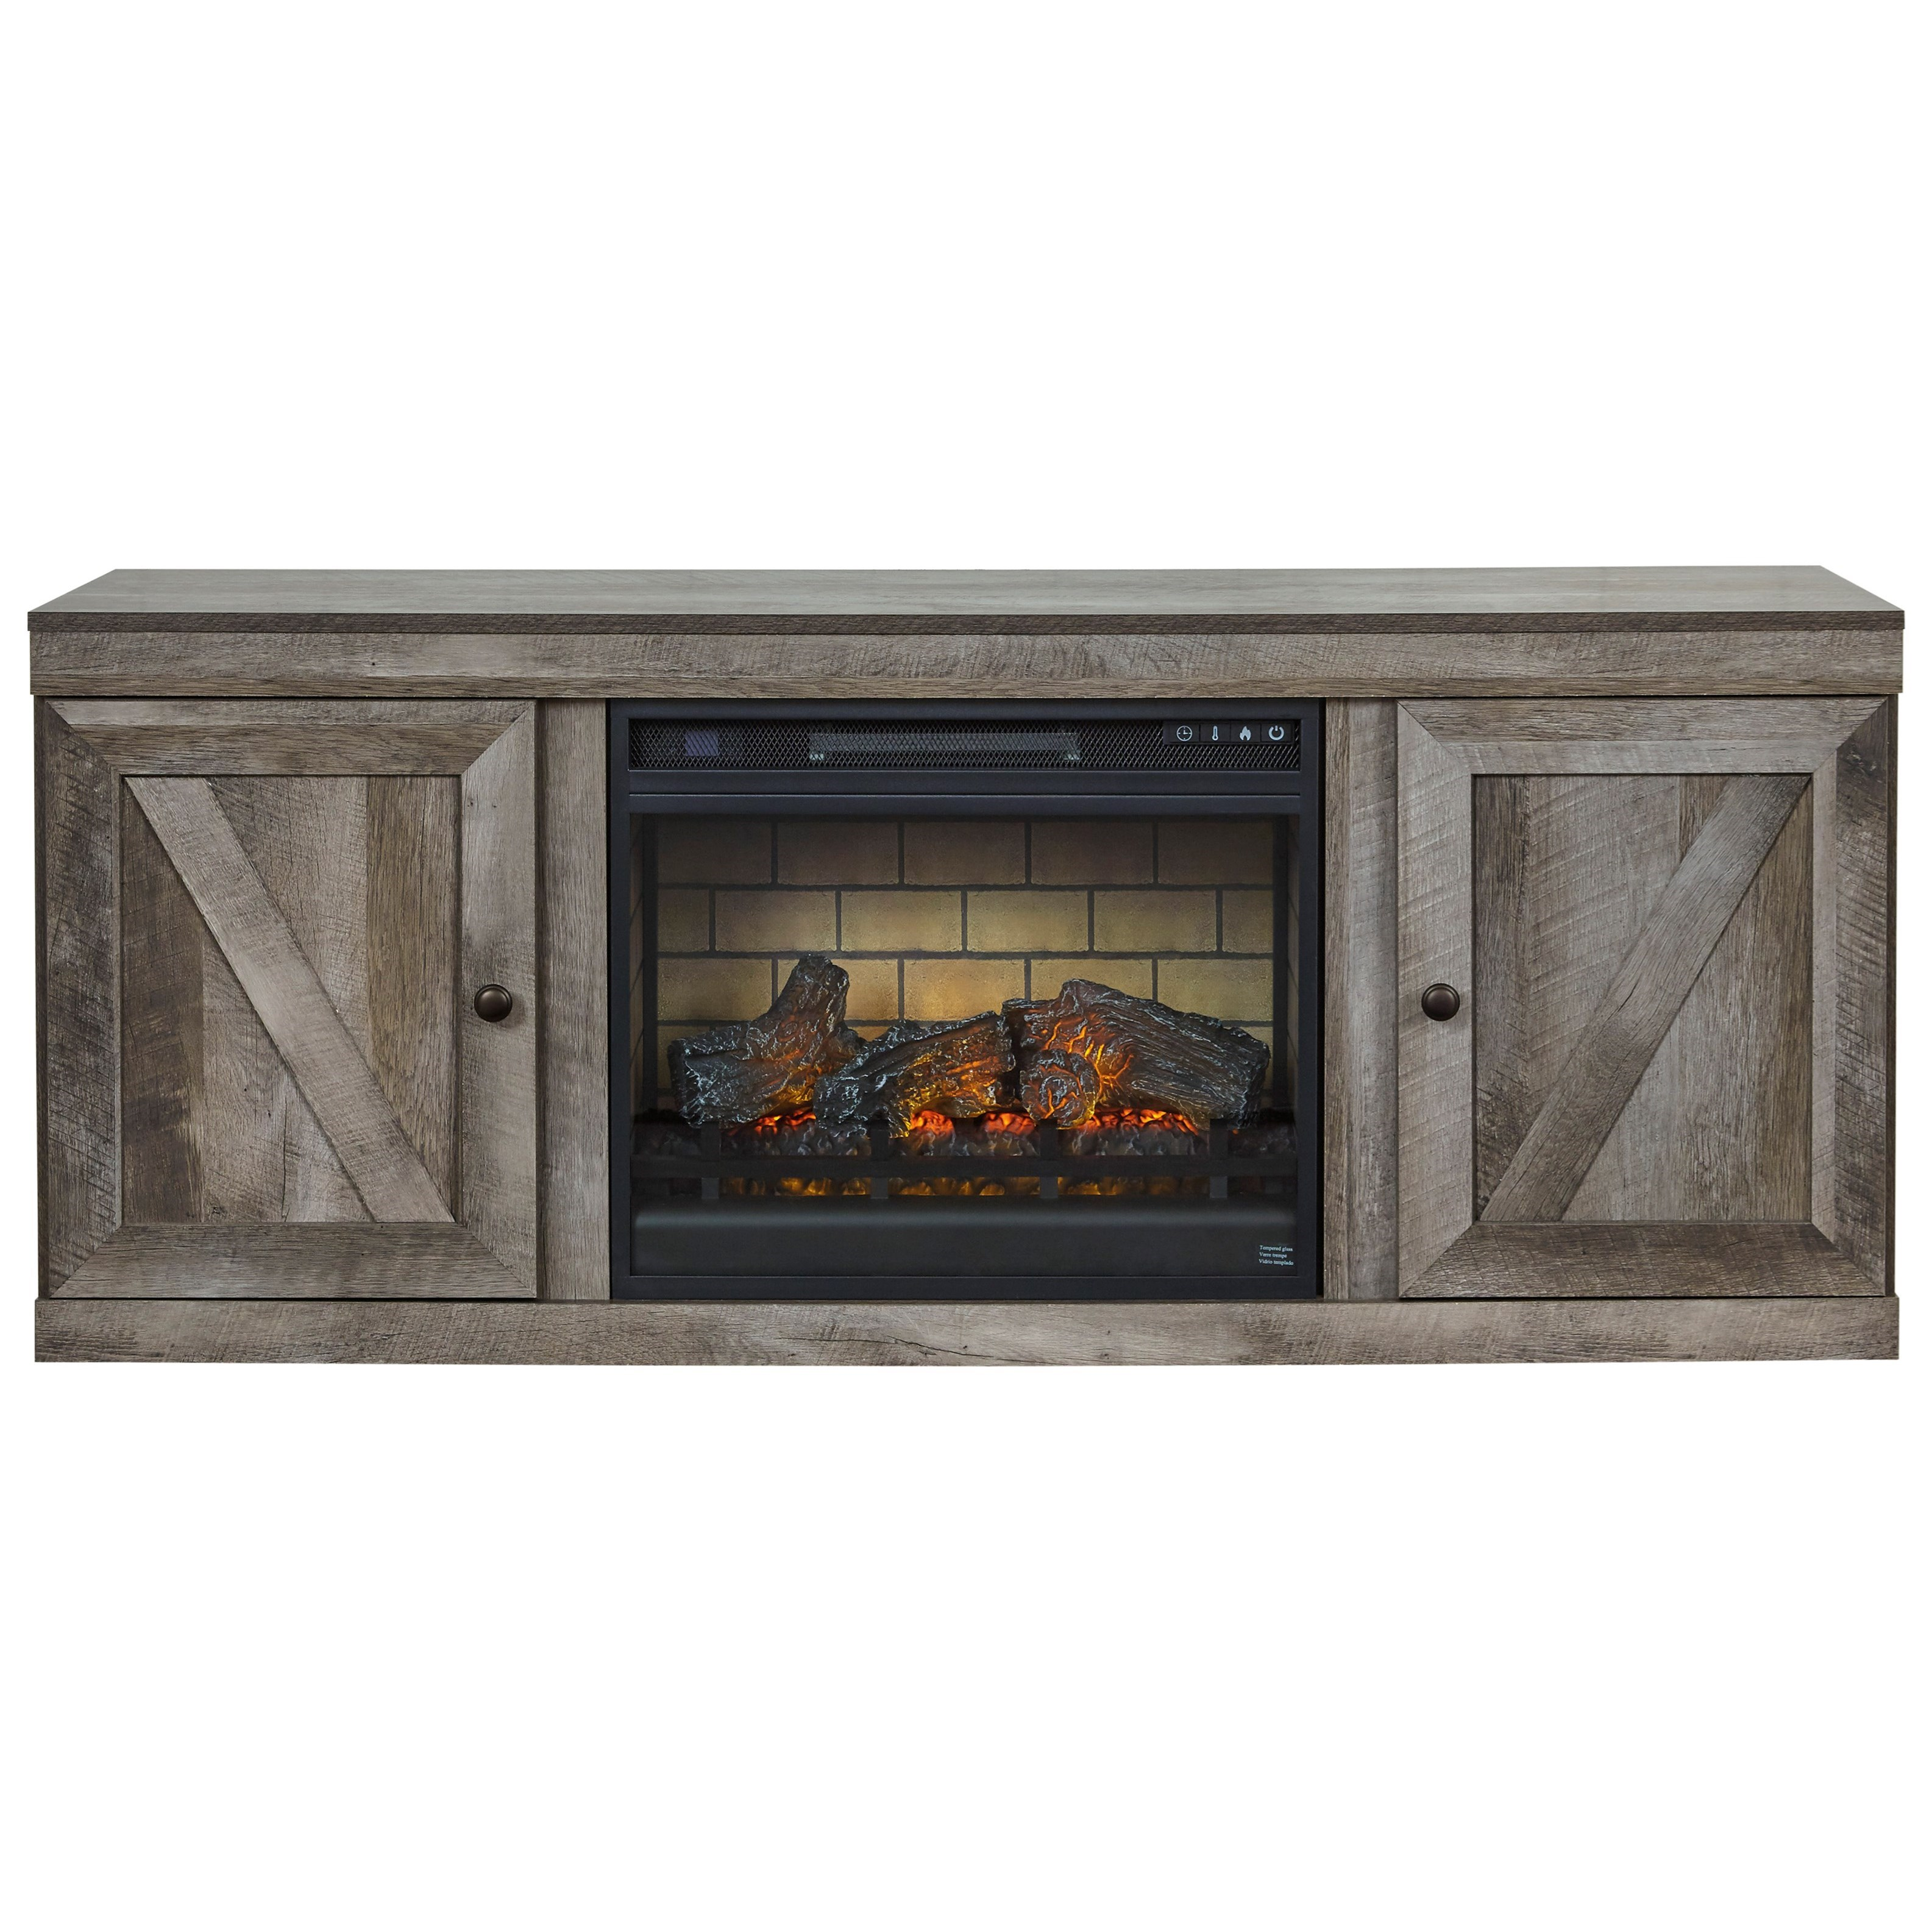 Wynnlow Large TV Stand w/ Fireplace Insert by Signature Design by Ashley at Darvin Furniture